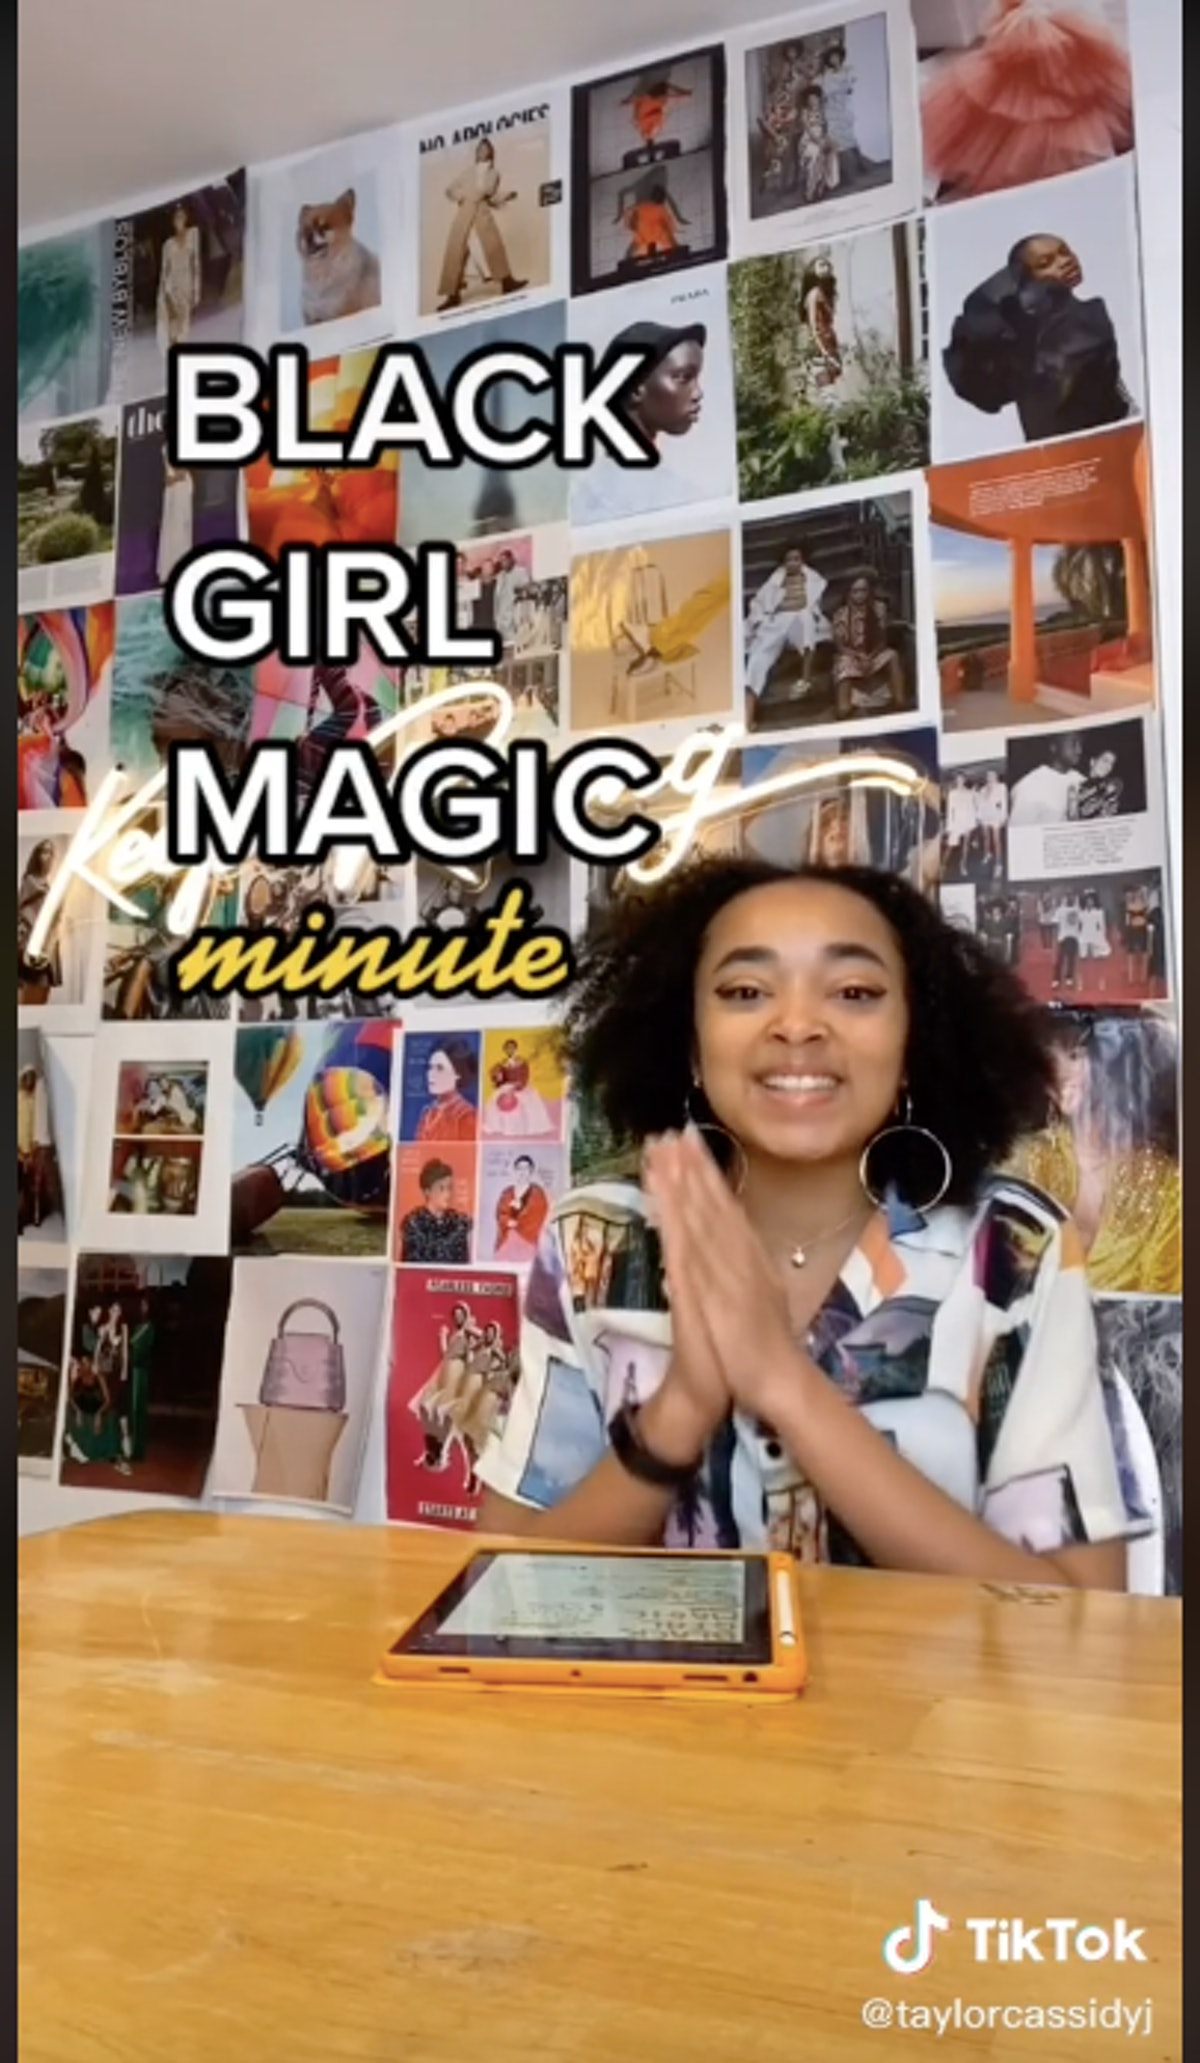 """Taylor Cassidy shouts out creators and followers in """"Black Girl Magic Minute.'"""